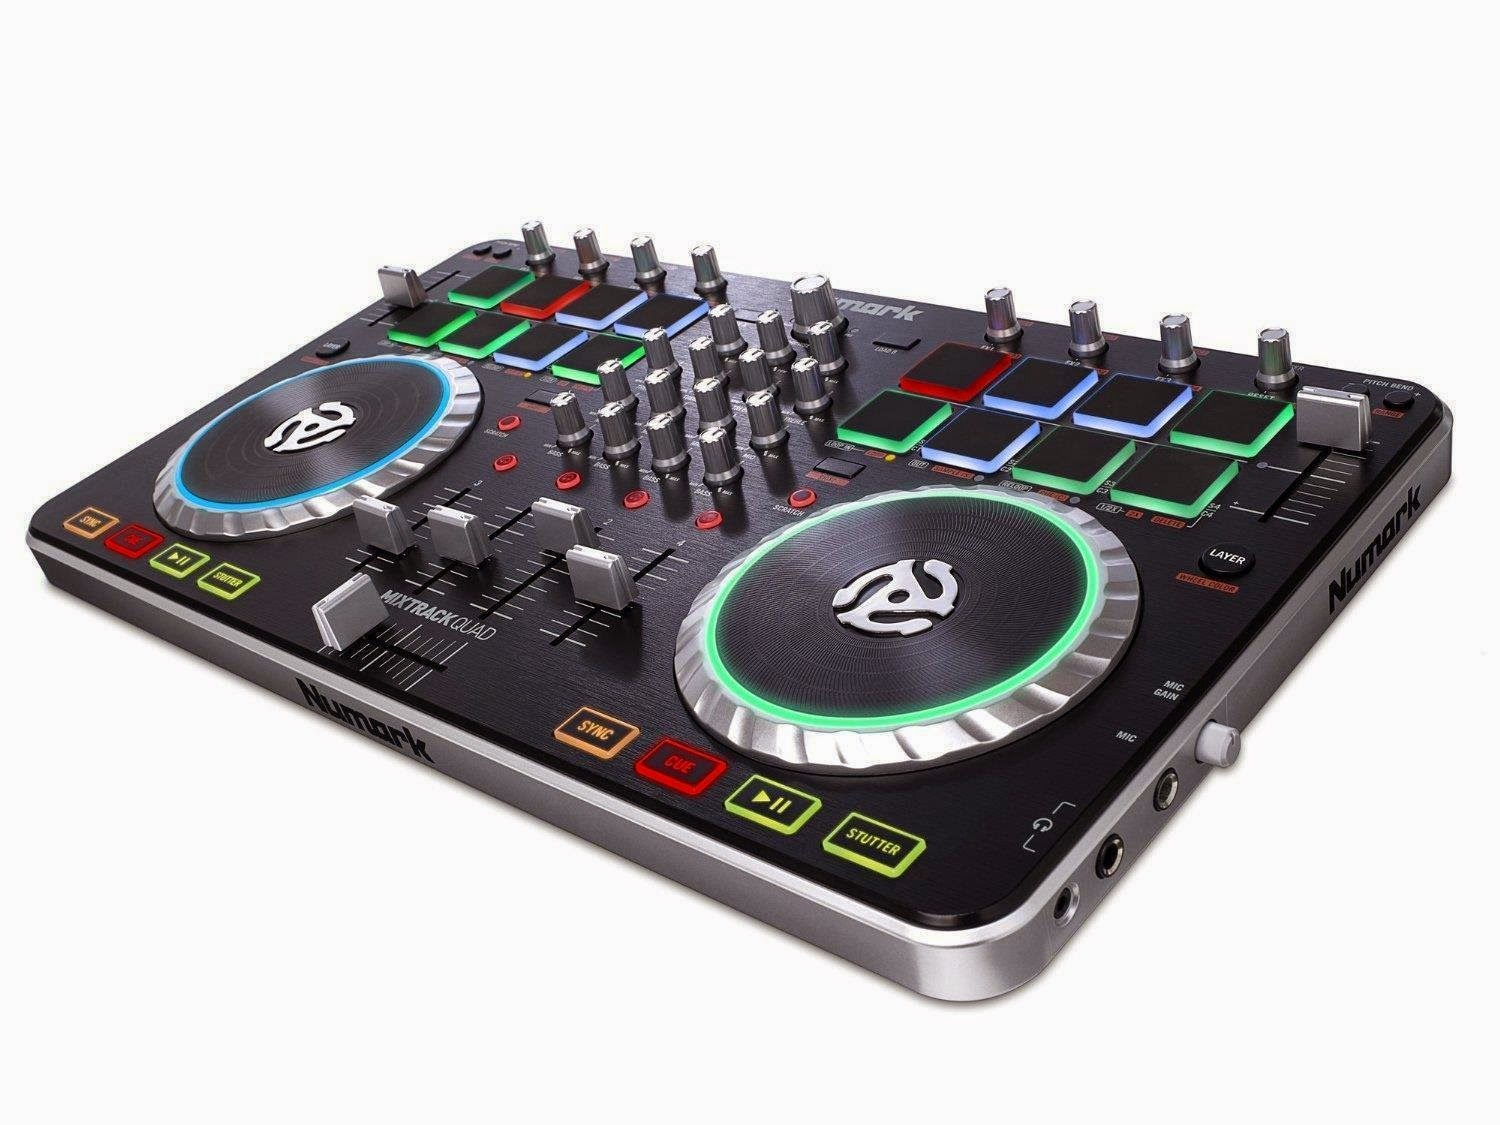 Amazon: Buy Numark Mixtrack Quad Four Deck USB DJ Controller at Rs.19975